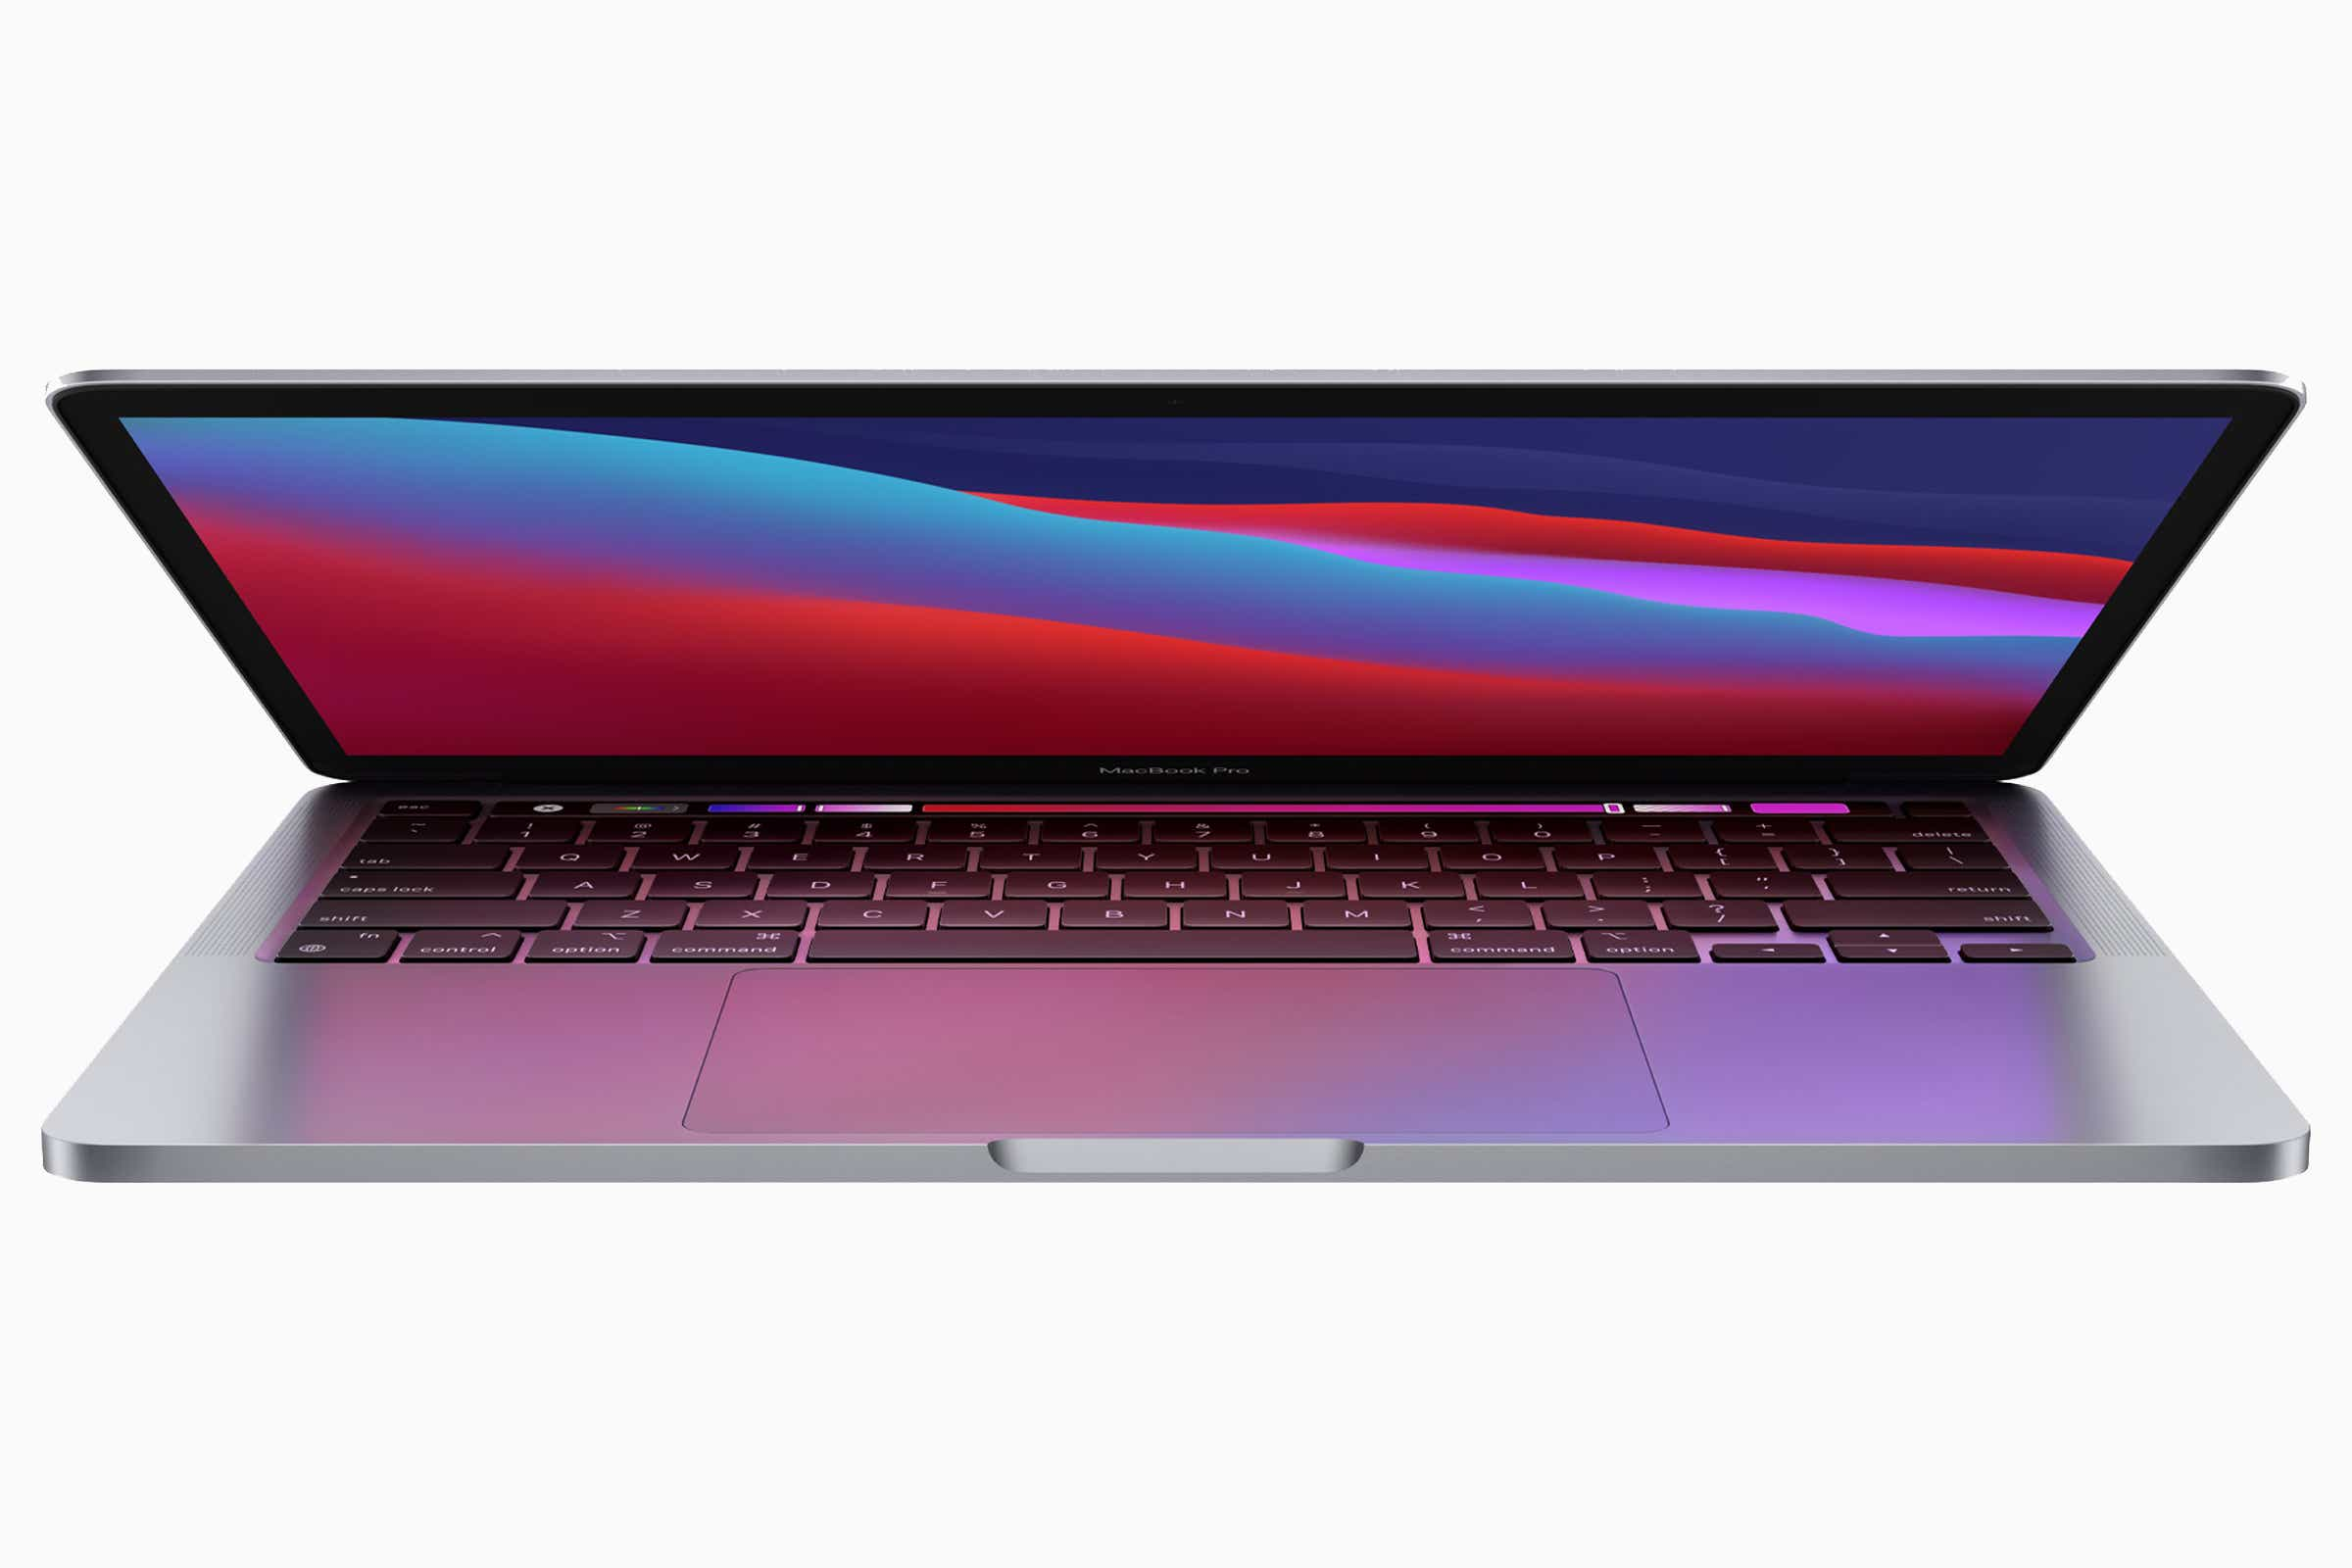 13-inch MacBook Pro (M1, 256GB SSD, Late 2020)